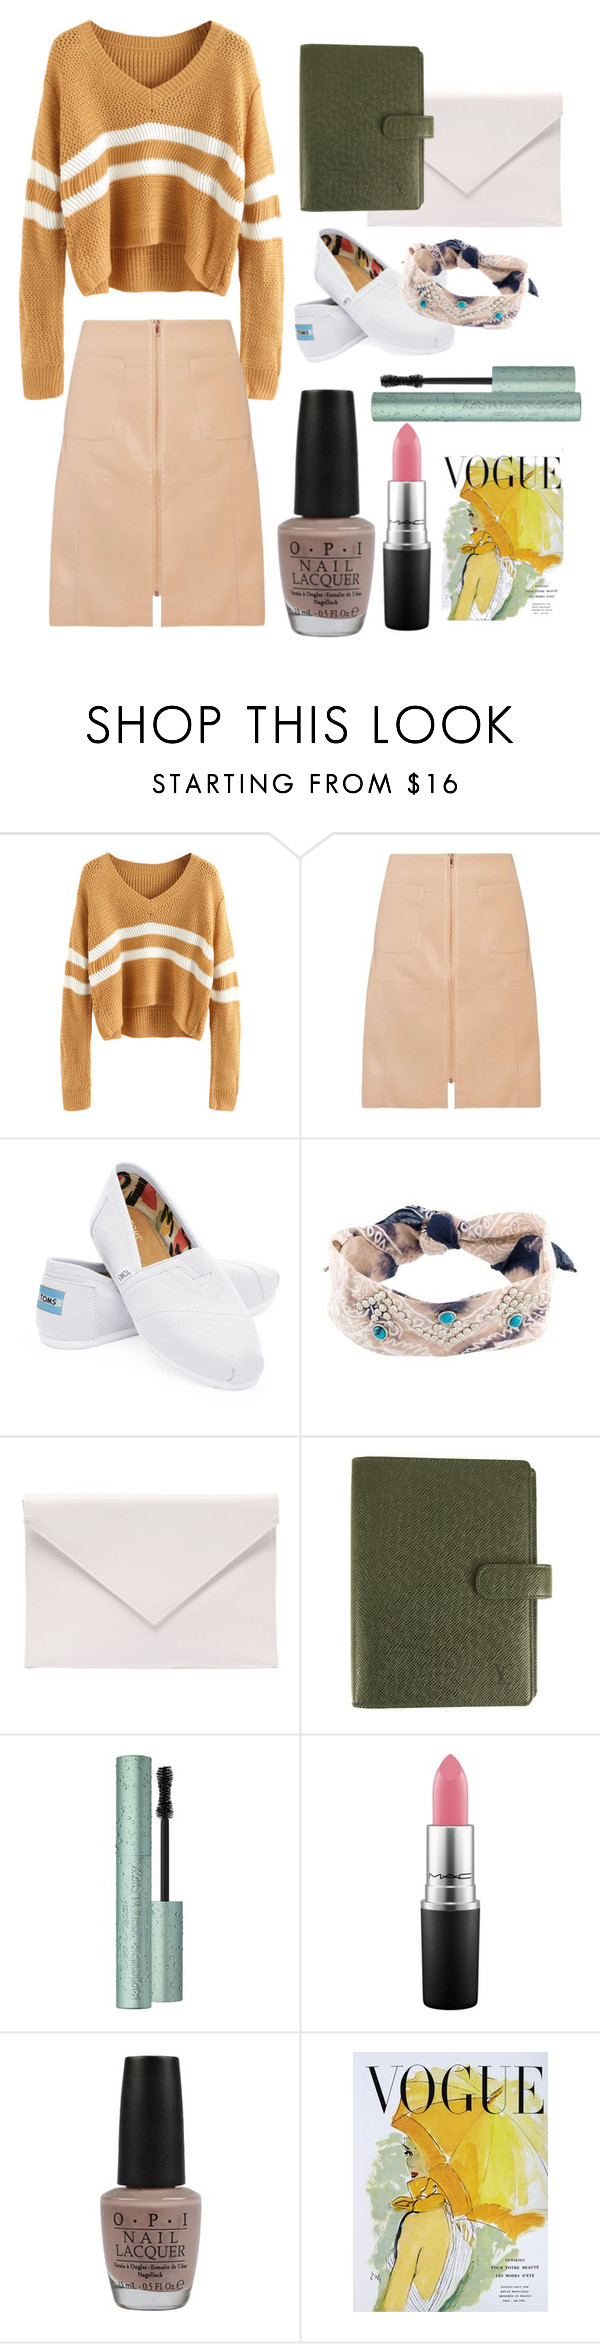 """#6 BTS"" by avocat ❤ liked on Polyvore featuring Dorothy Perkins, TOMS, DANNIJO, Verali, Louis Vuitton, Too Faced Cosmetics, MAC Cosmetics, OPI and Art for Life"